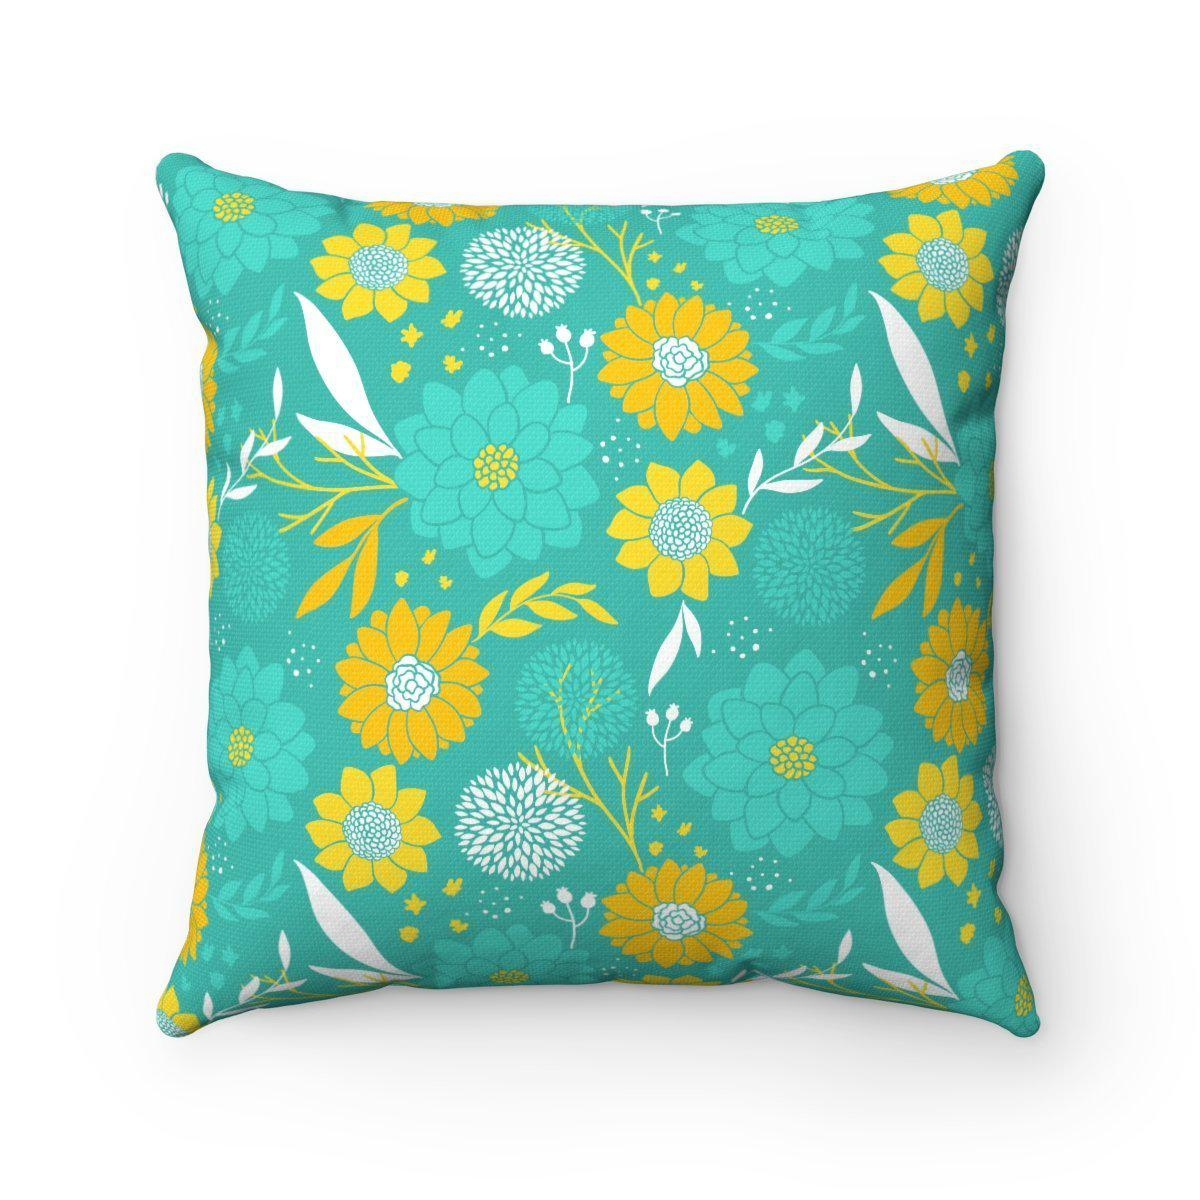 Garden Double sided modern decorative cushion cover-Home Decor - Decorative Accents - Pillows & Throws - Decorative Pillows-Maison d'Elite-Très Elite